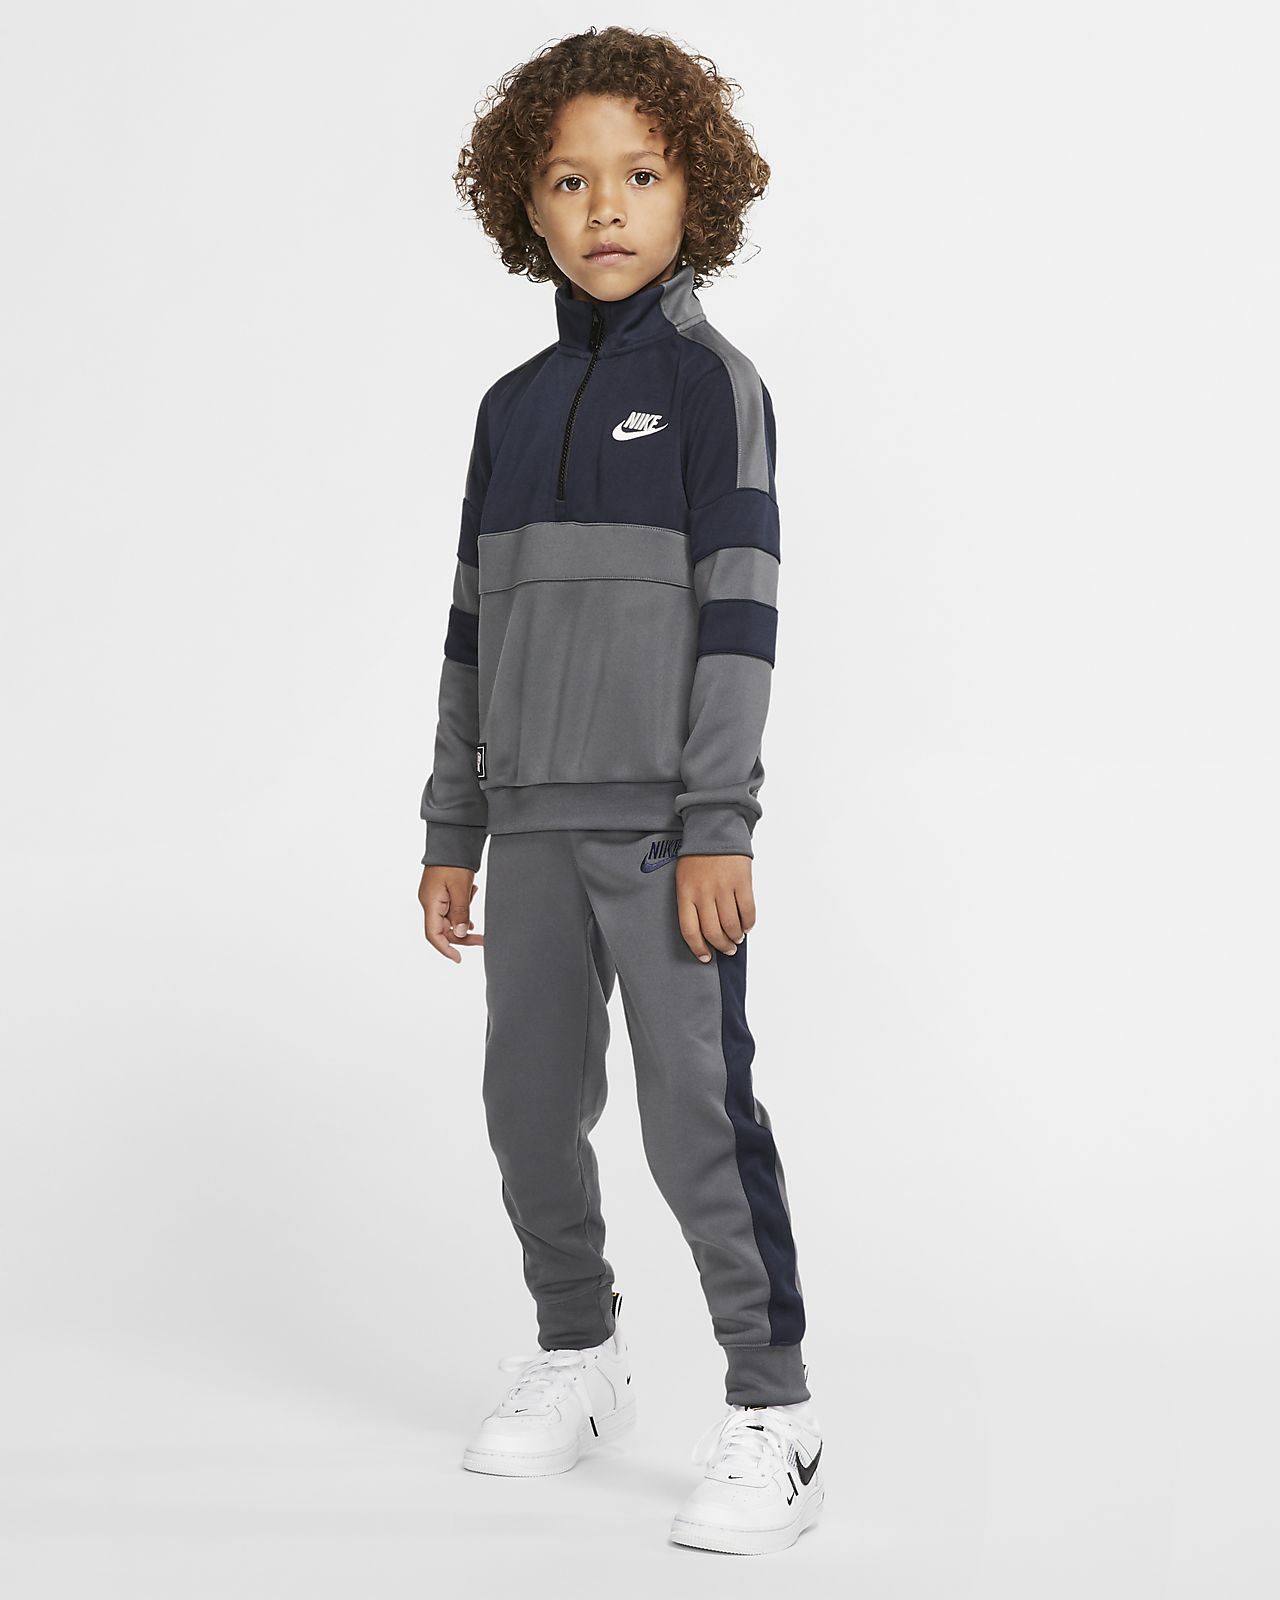 Nike Air Younger Kids' 2-Piece Set